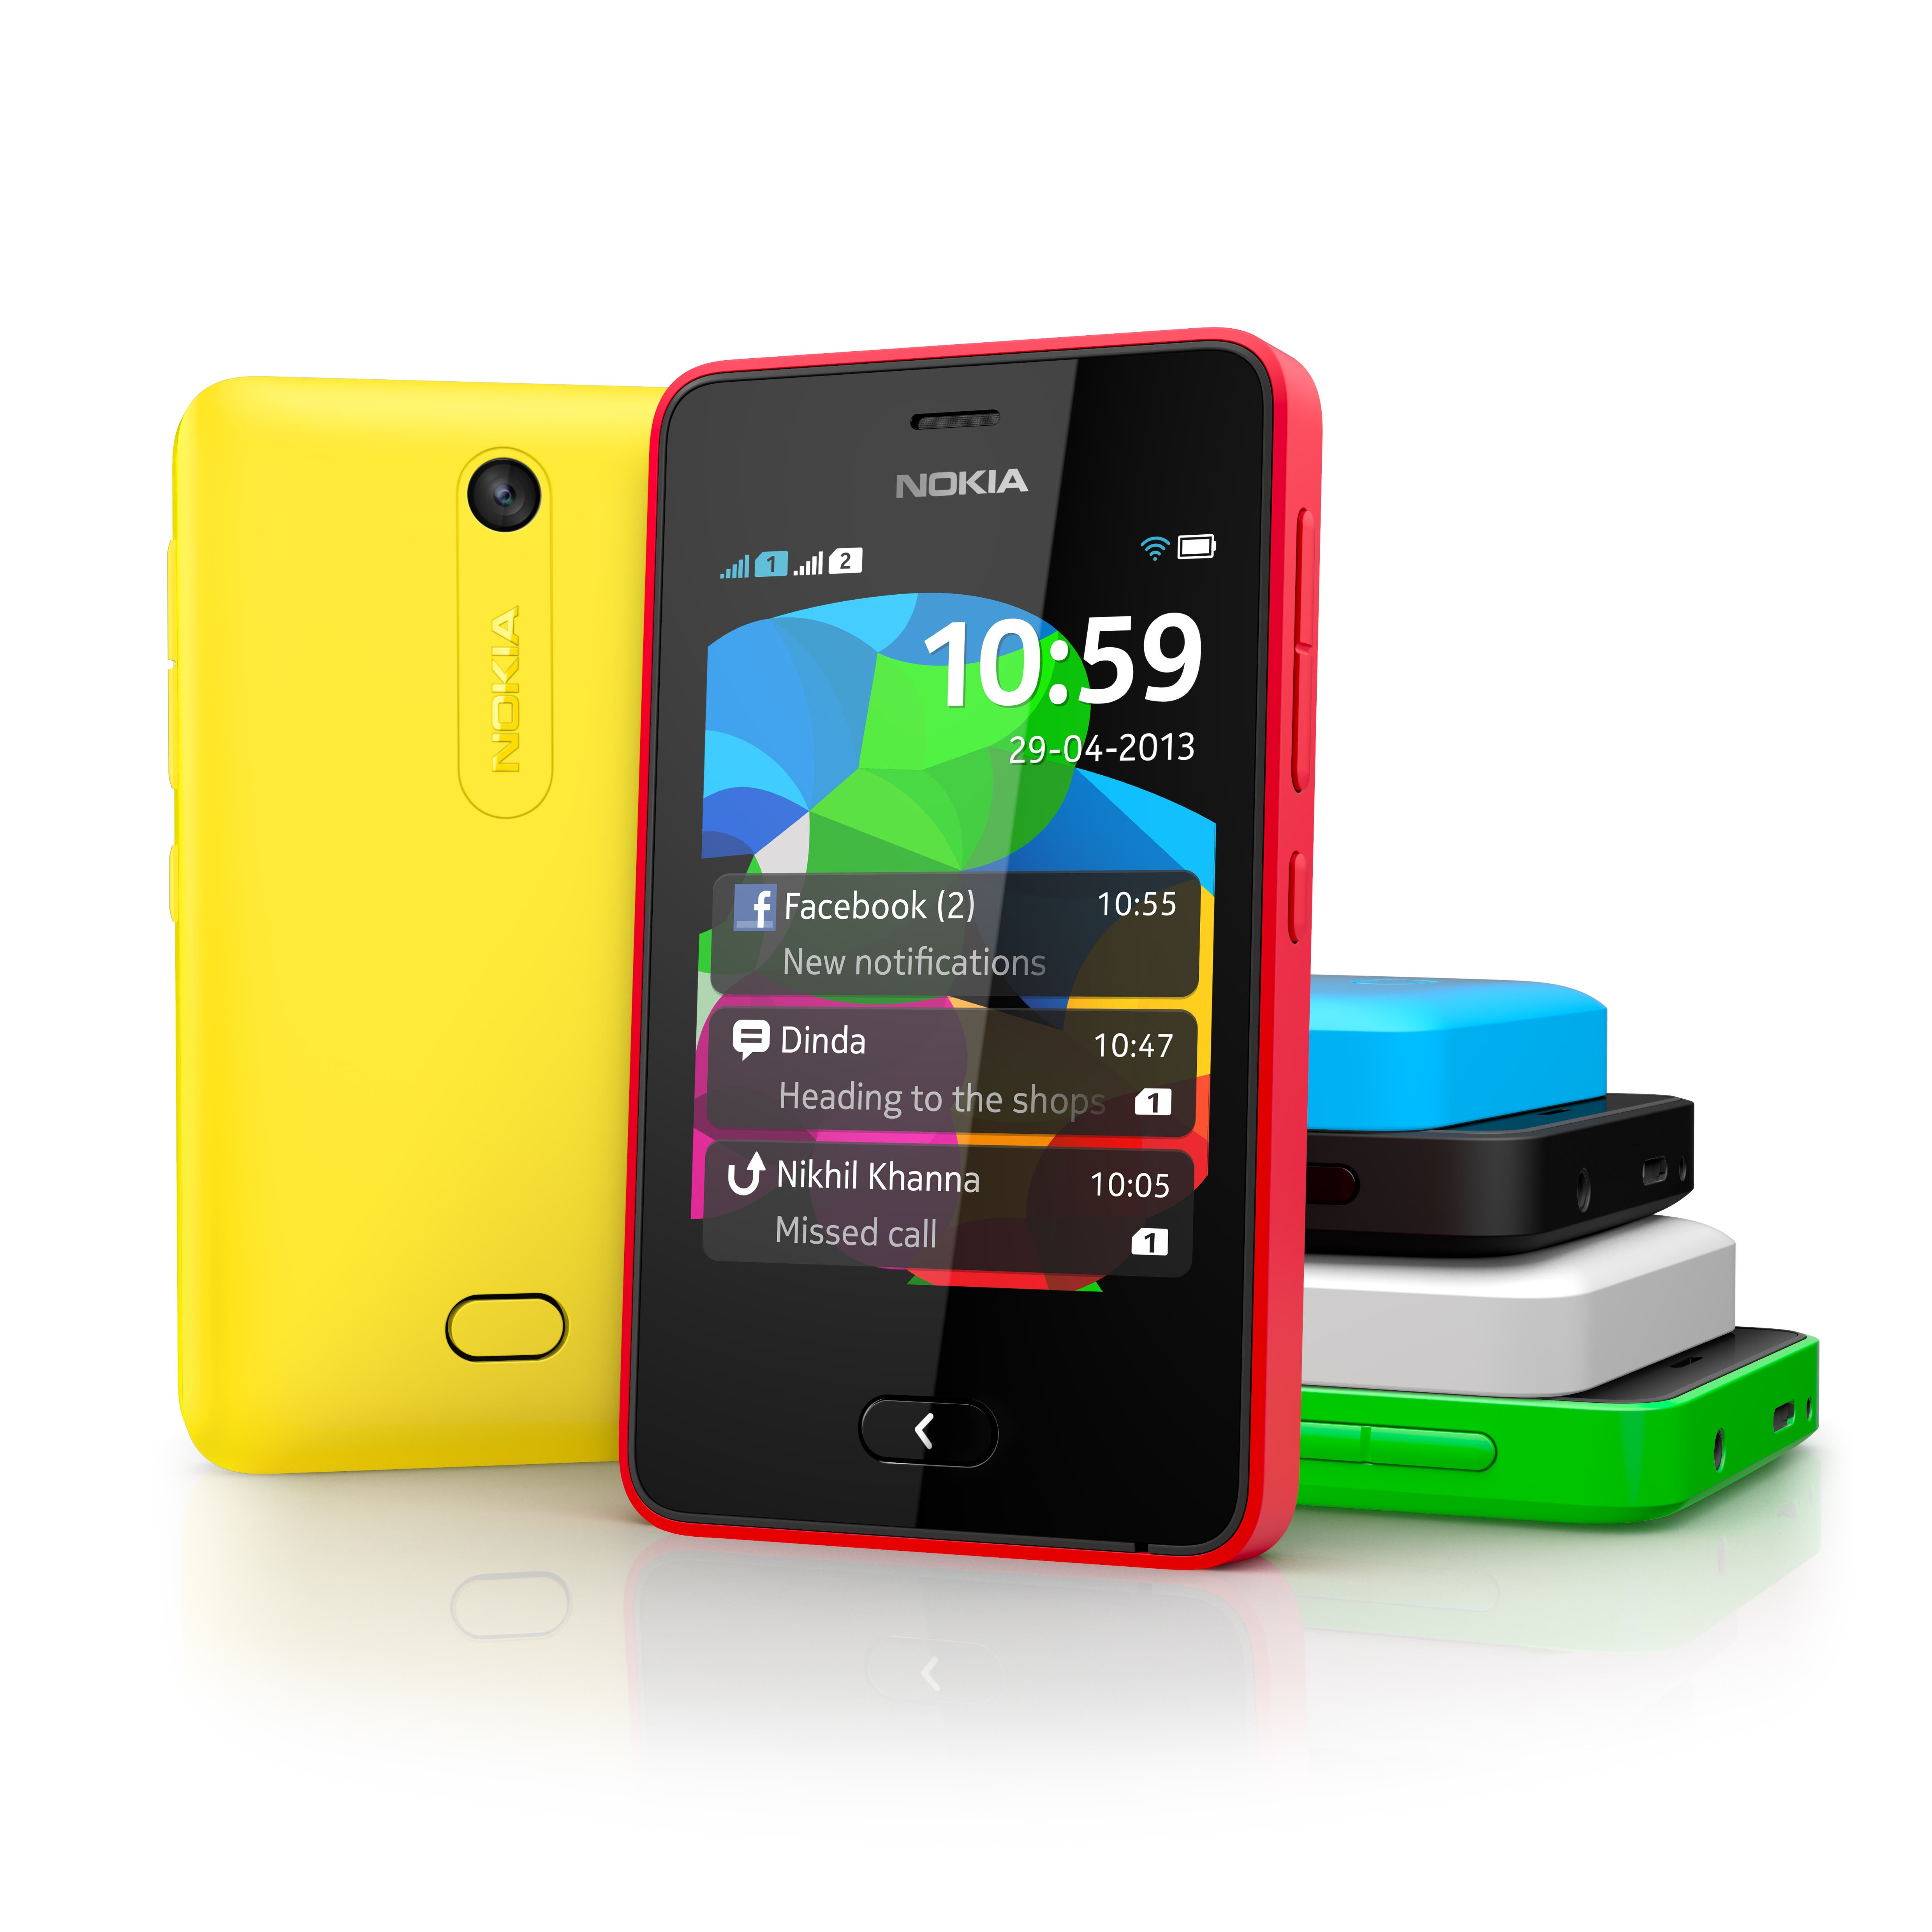 Nokia Asha 501 – S40 Smartphone fuer $99 – Update: Video!